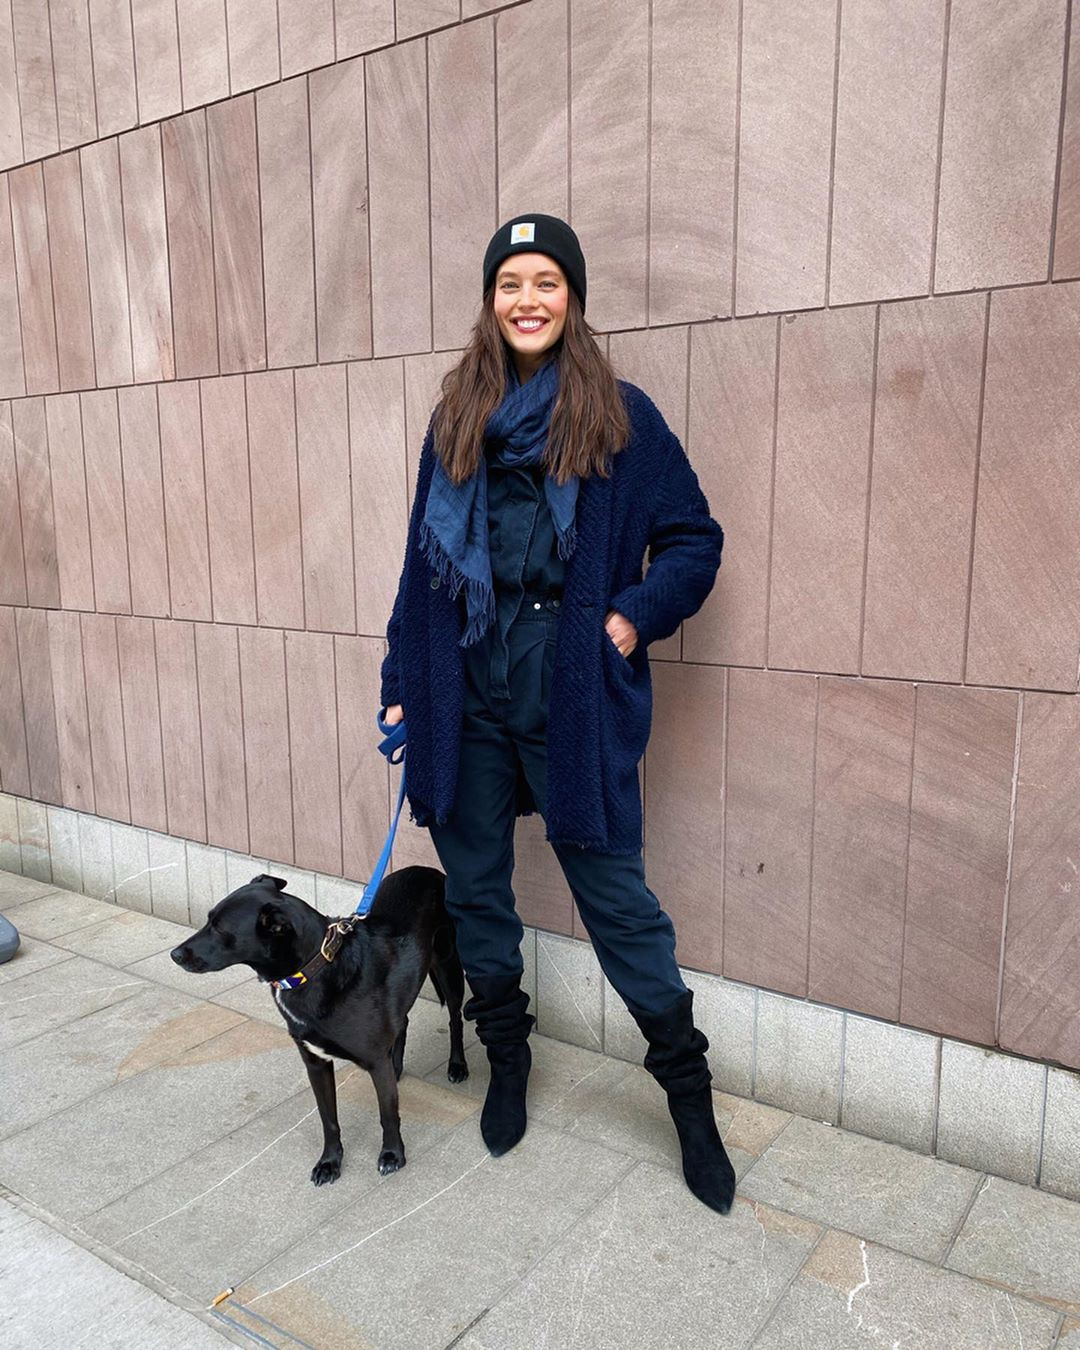 Emily DiDonato beanie, jeans, coat style outfit